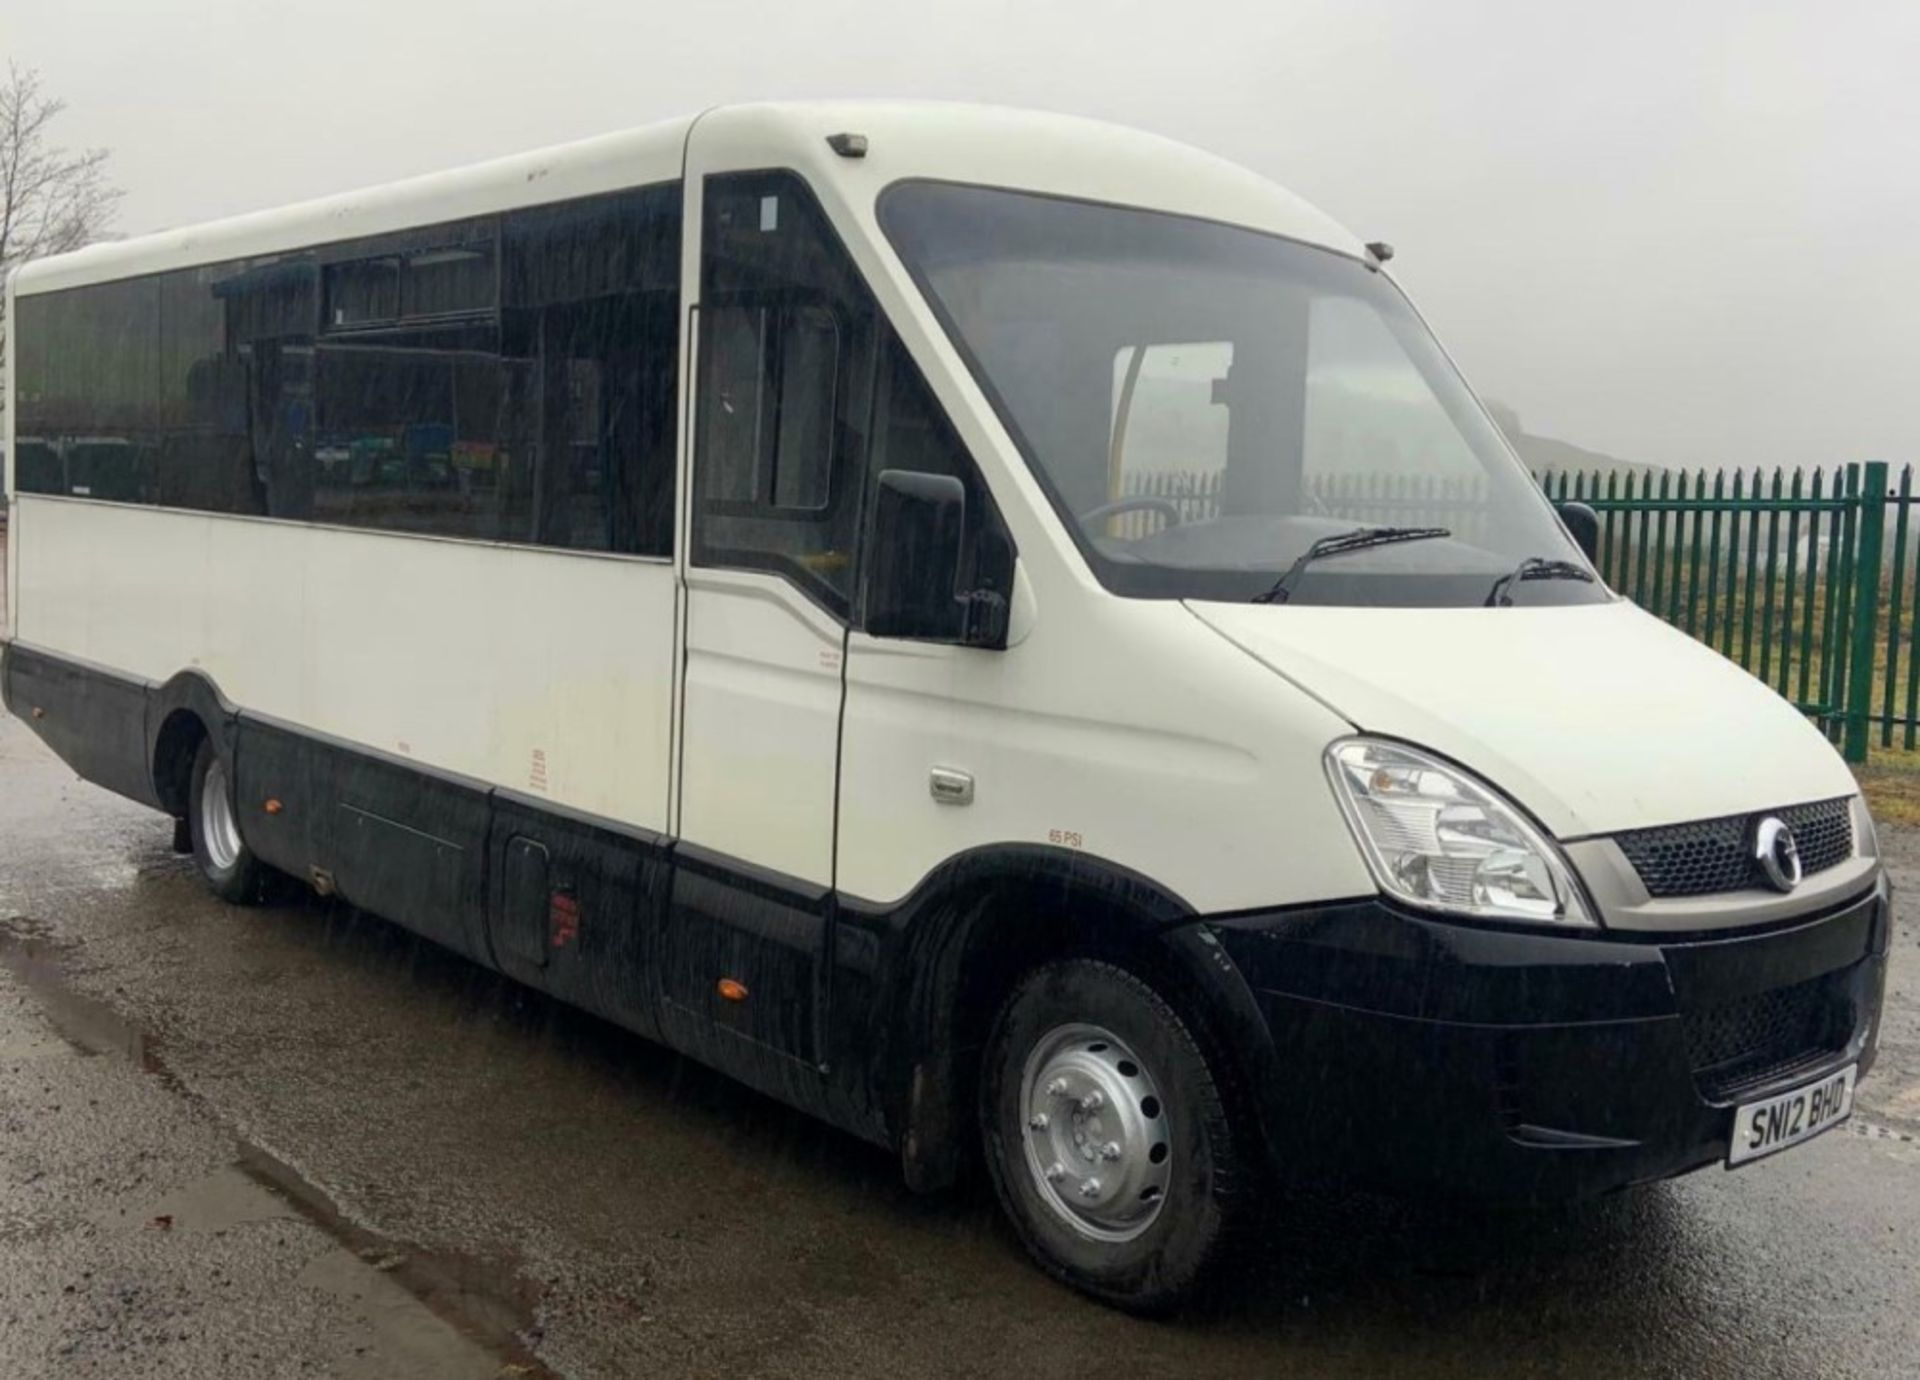 12 reg IRIS DAILY 65C17 MELLOR 11 SEAT BUS (LOCATION DUMFRIES) 1ST REG 05/12, 131454KM [+ VAT]